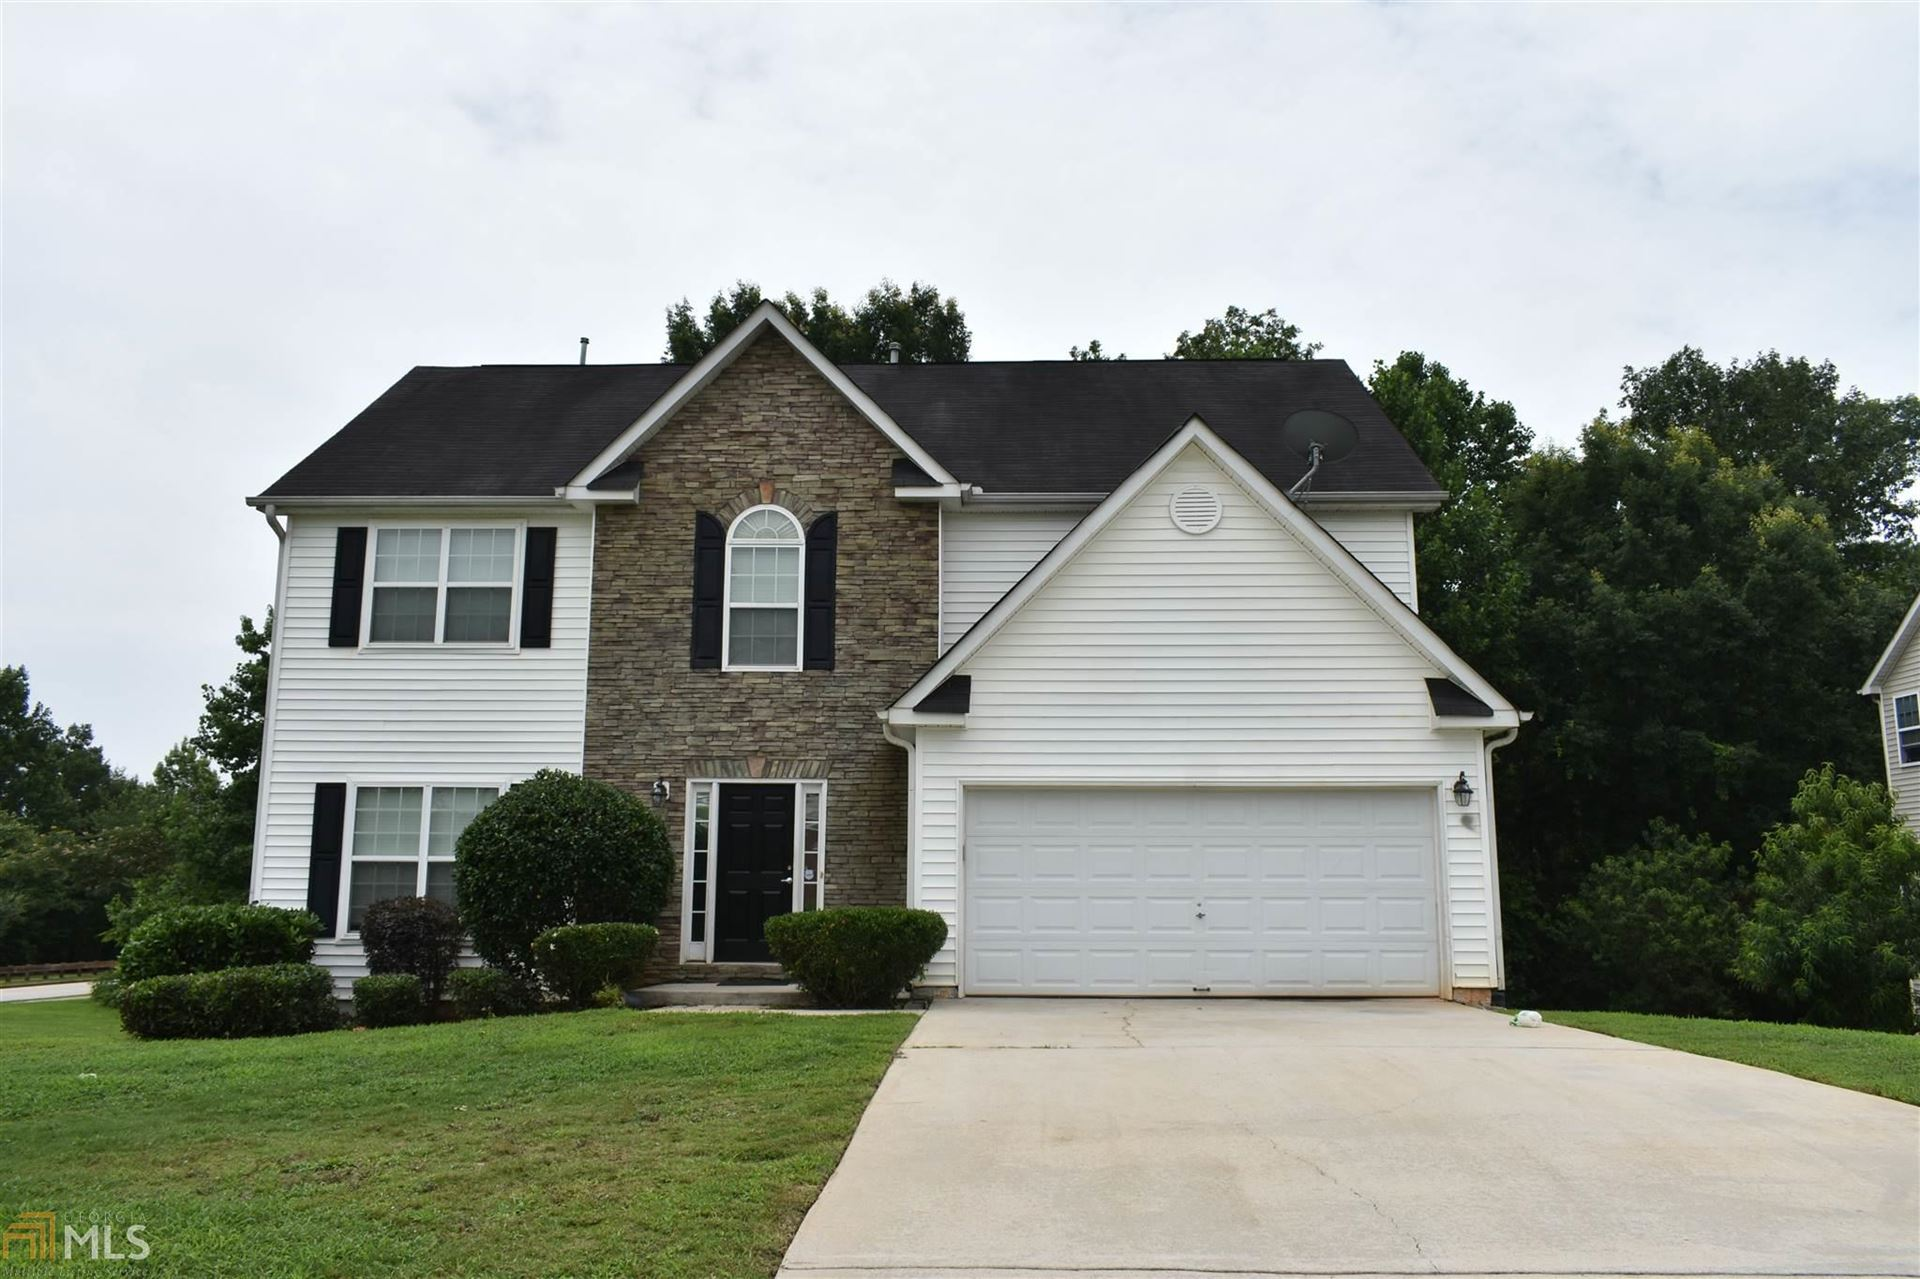 3001 Pale Moon Pl, McDonough, GA 30253 - #: 8813528